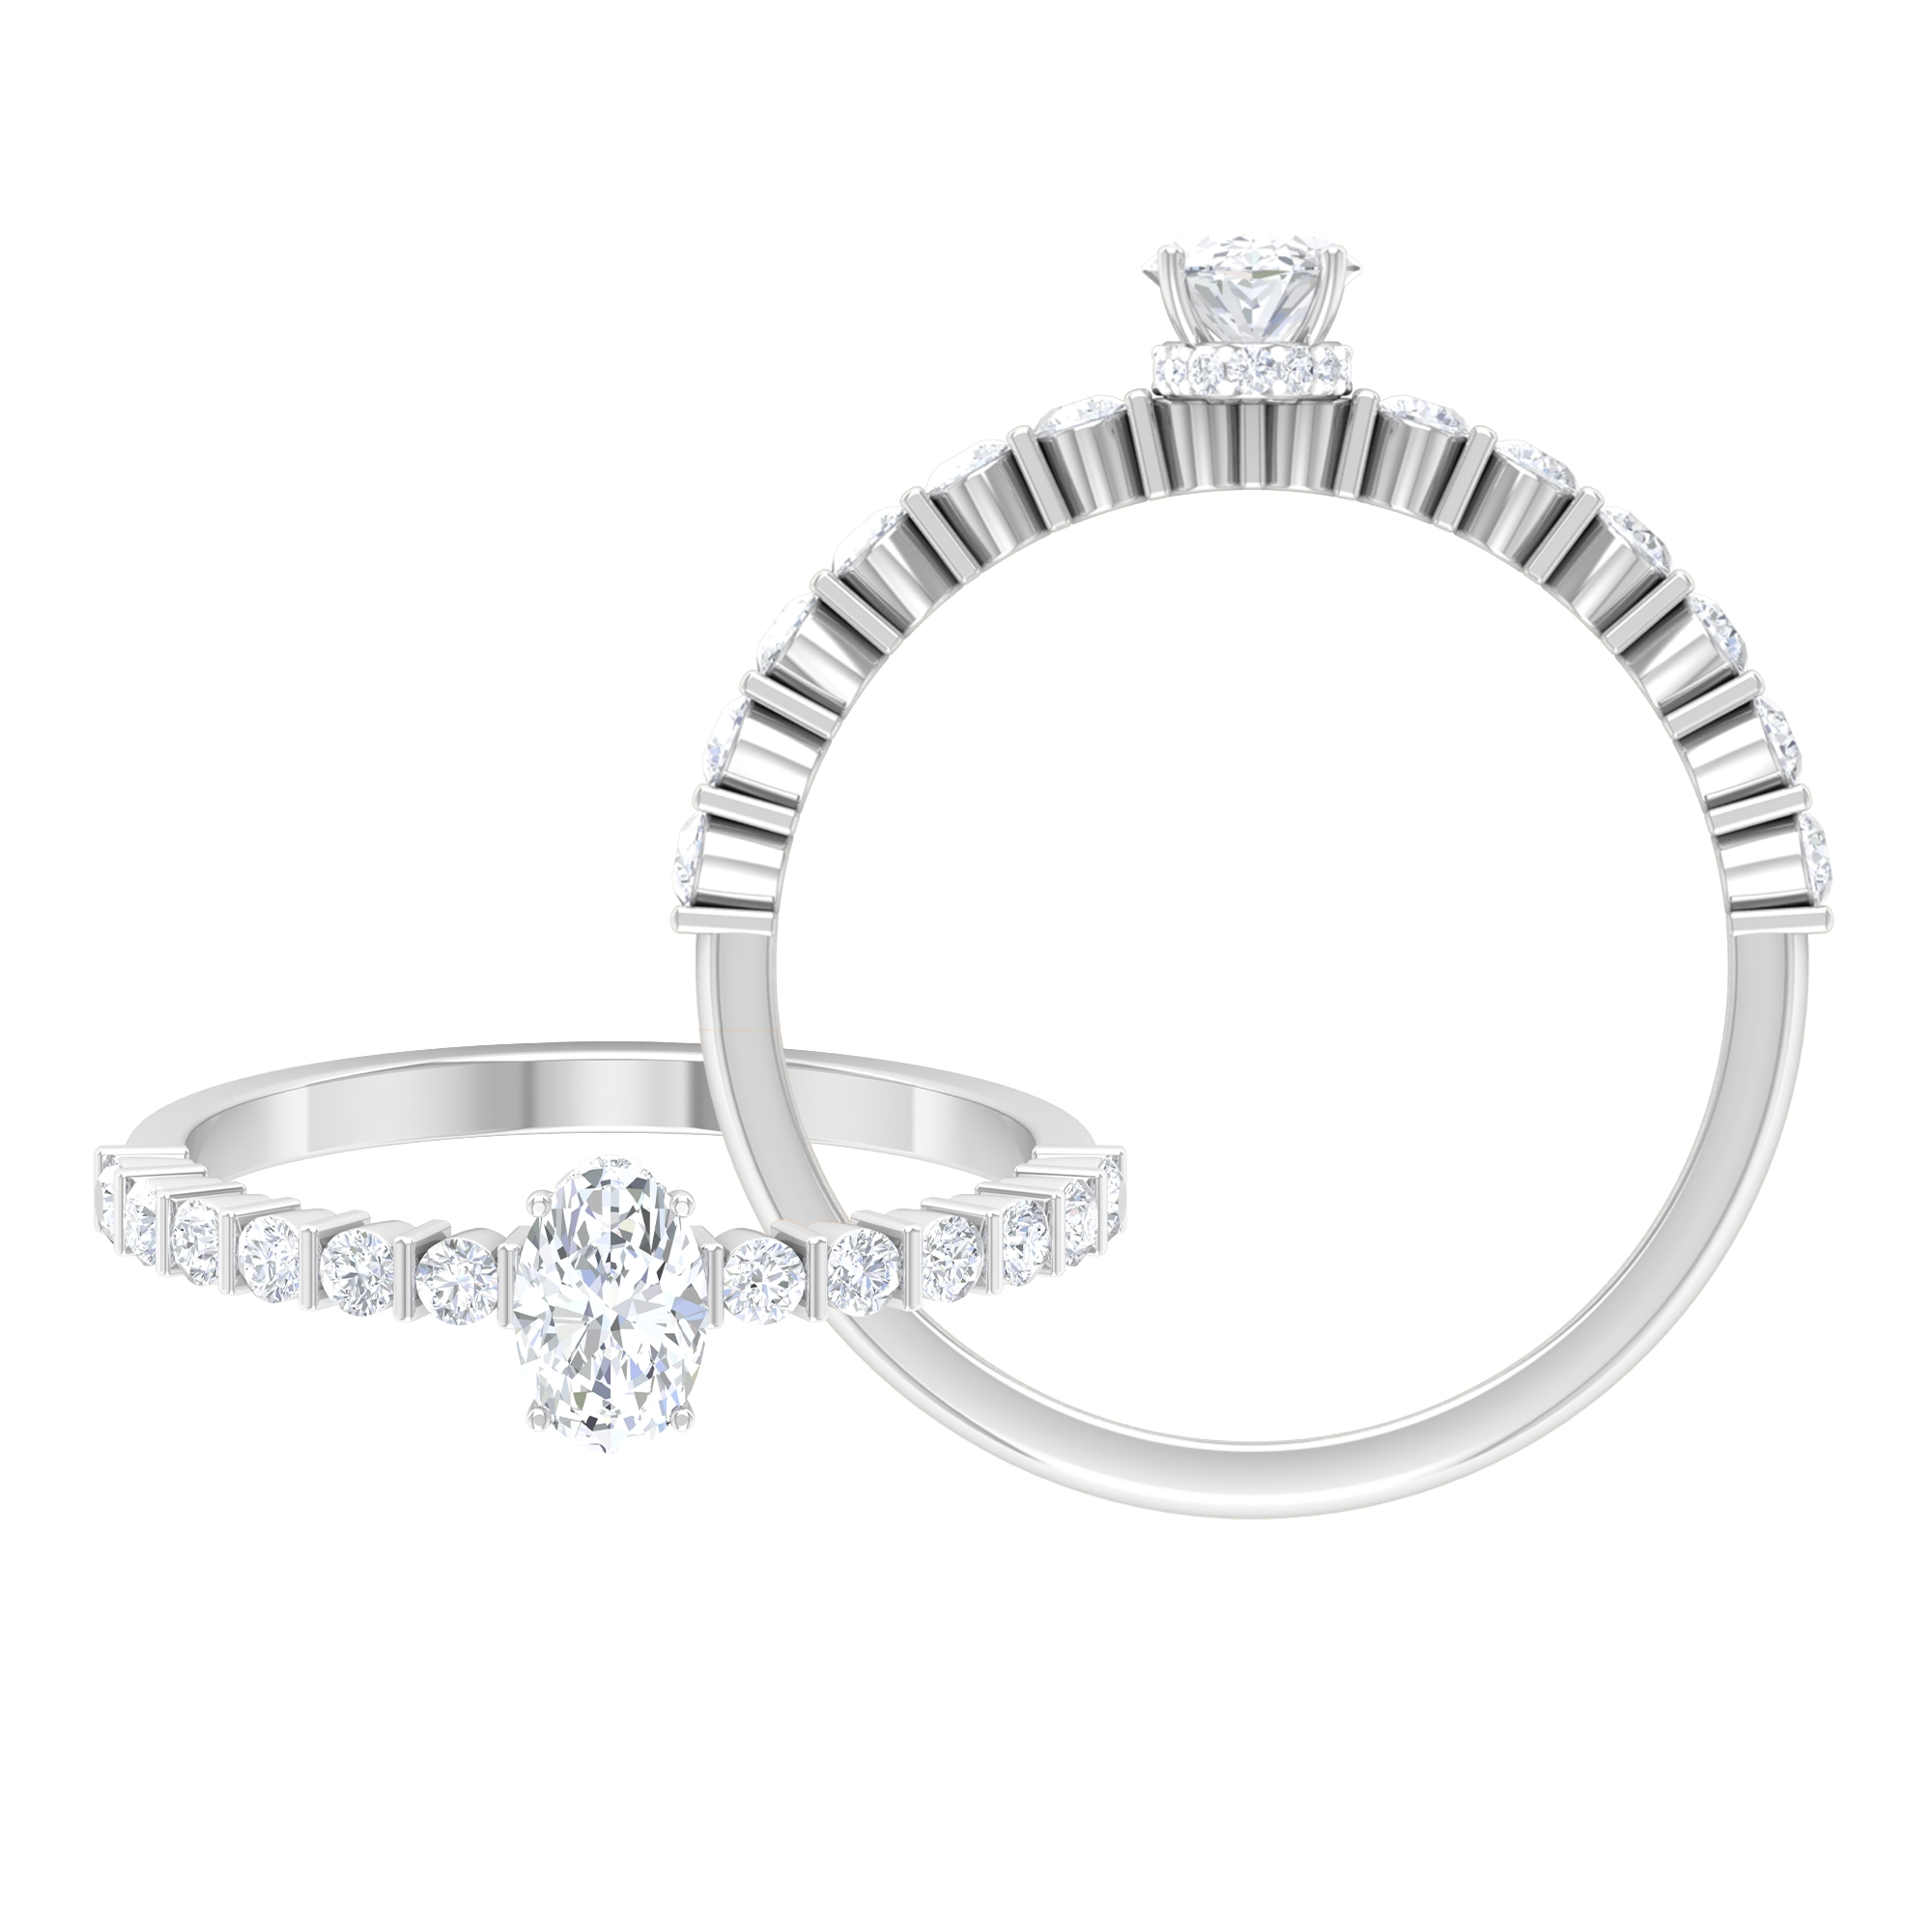 4X6 MM Oval Cut Diamond Solitaire Ring with Bar Set Side Stones and Hidden Halo Style